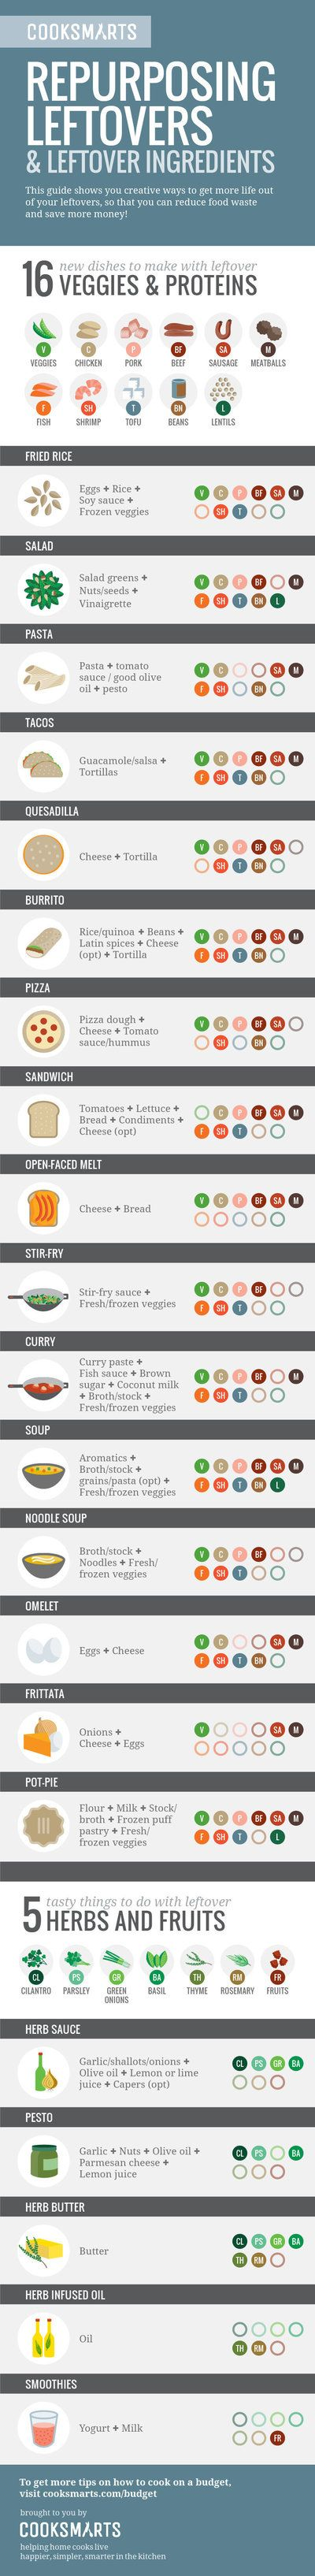 The Simple Chart That'll Turn Leftovers Into An Awesome New Meal